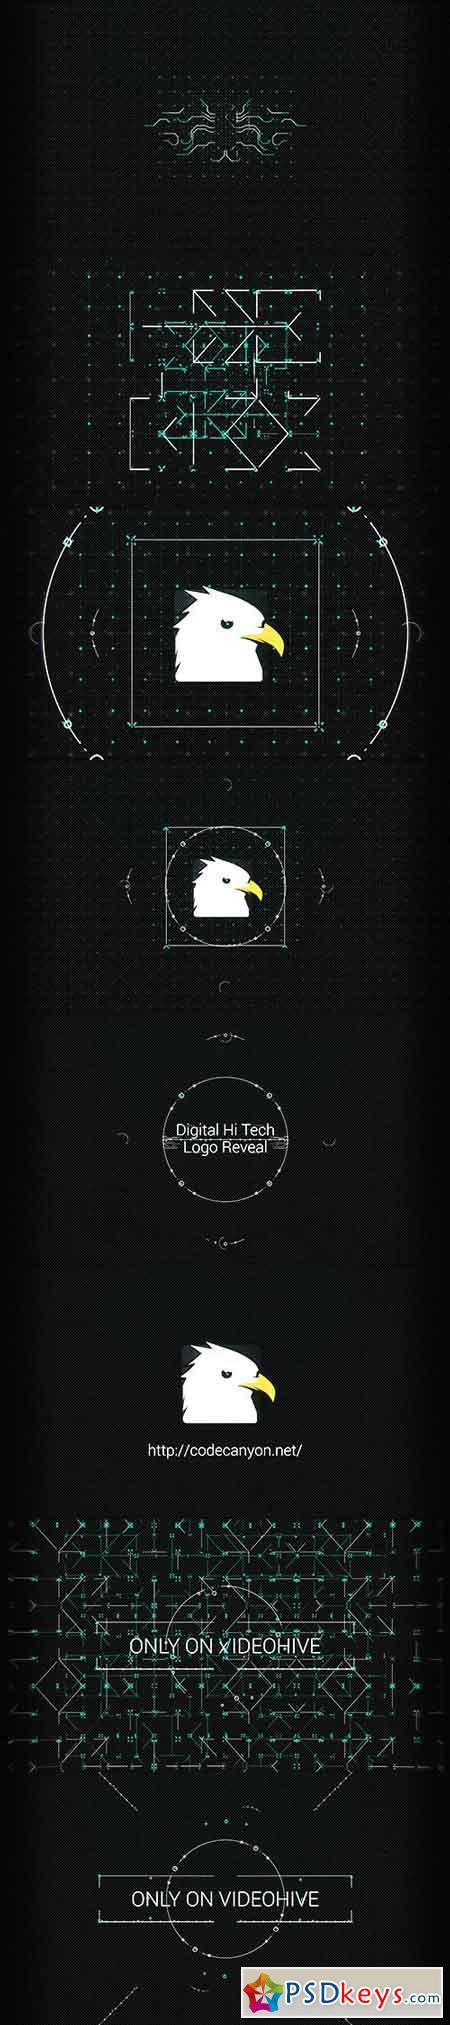 Digital Hi Tech Logo Reveal 11395309 - After Effects Projects